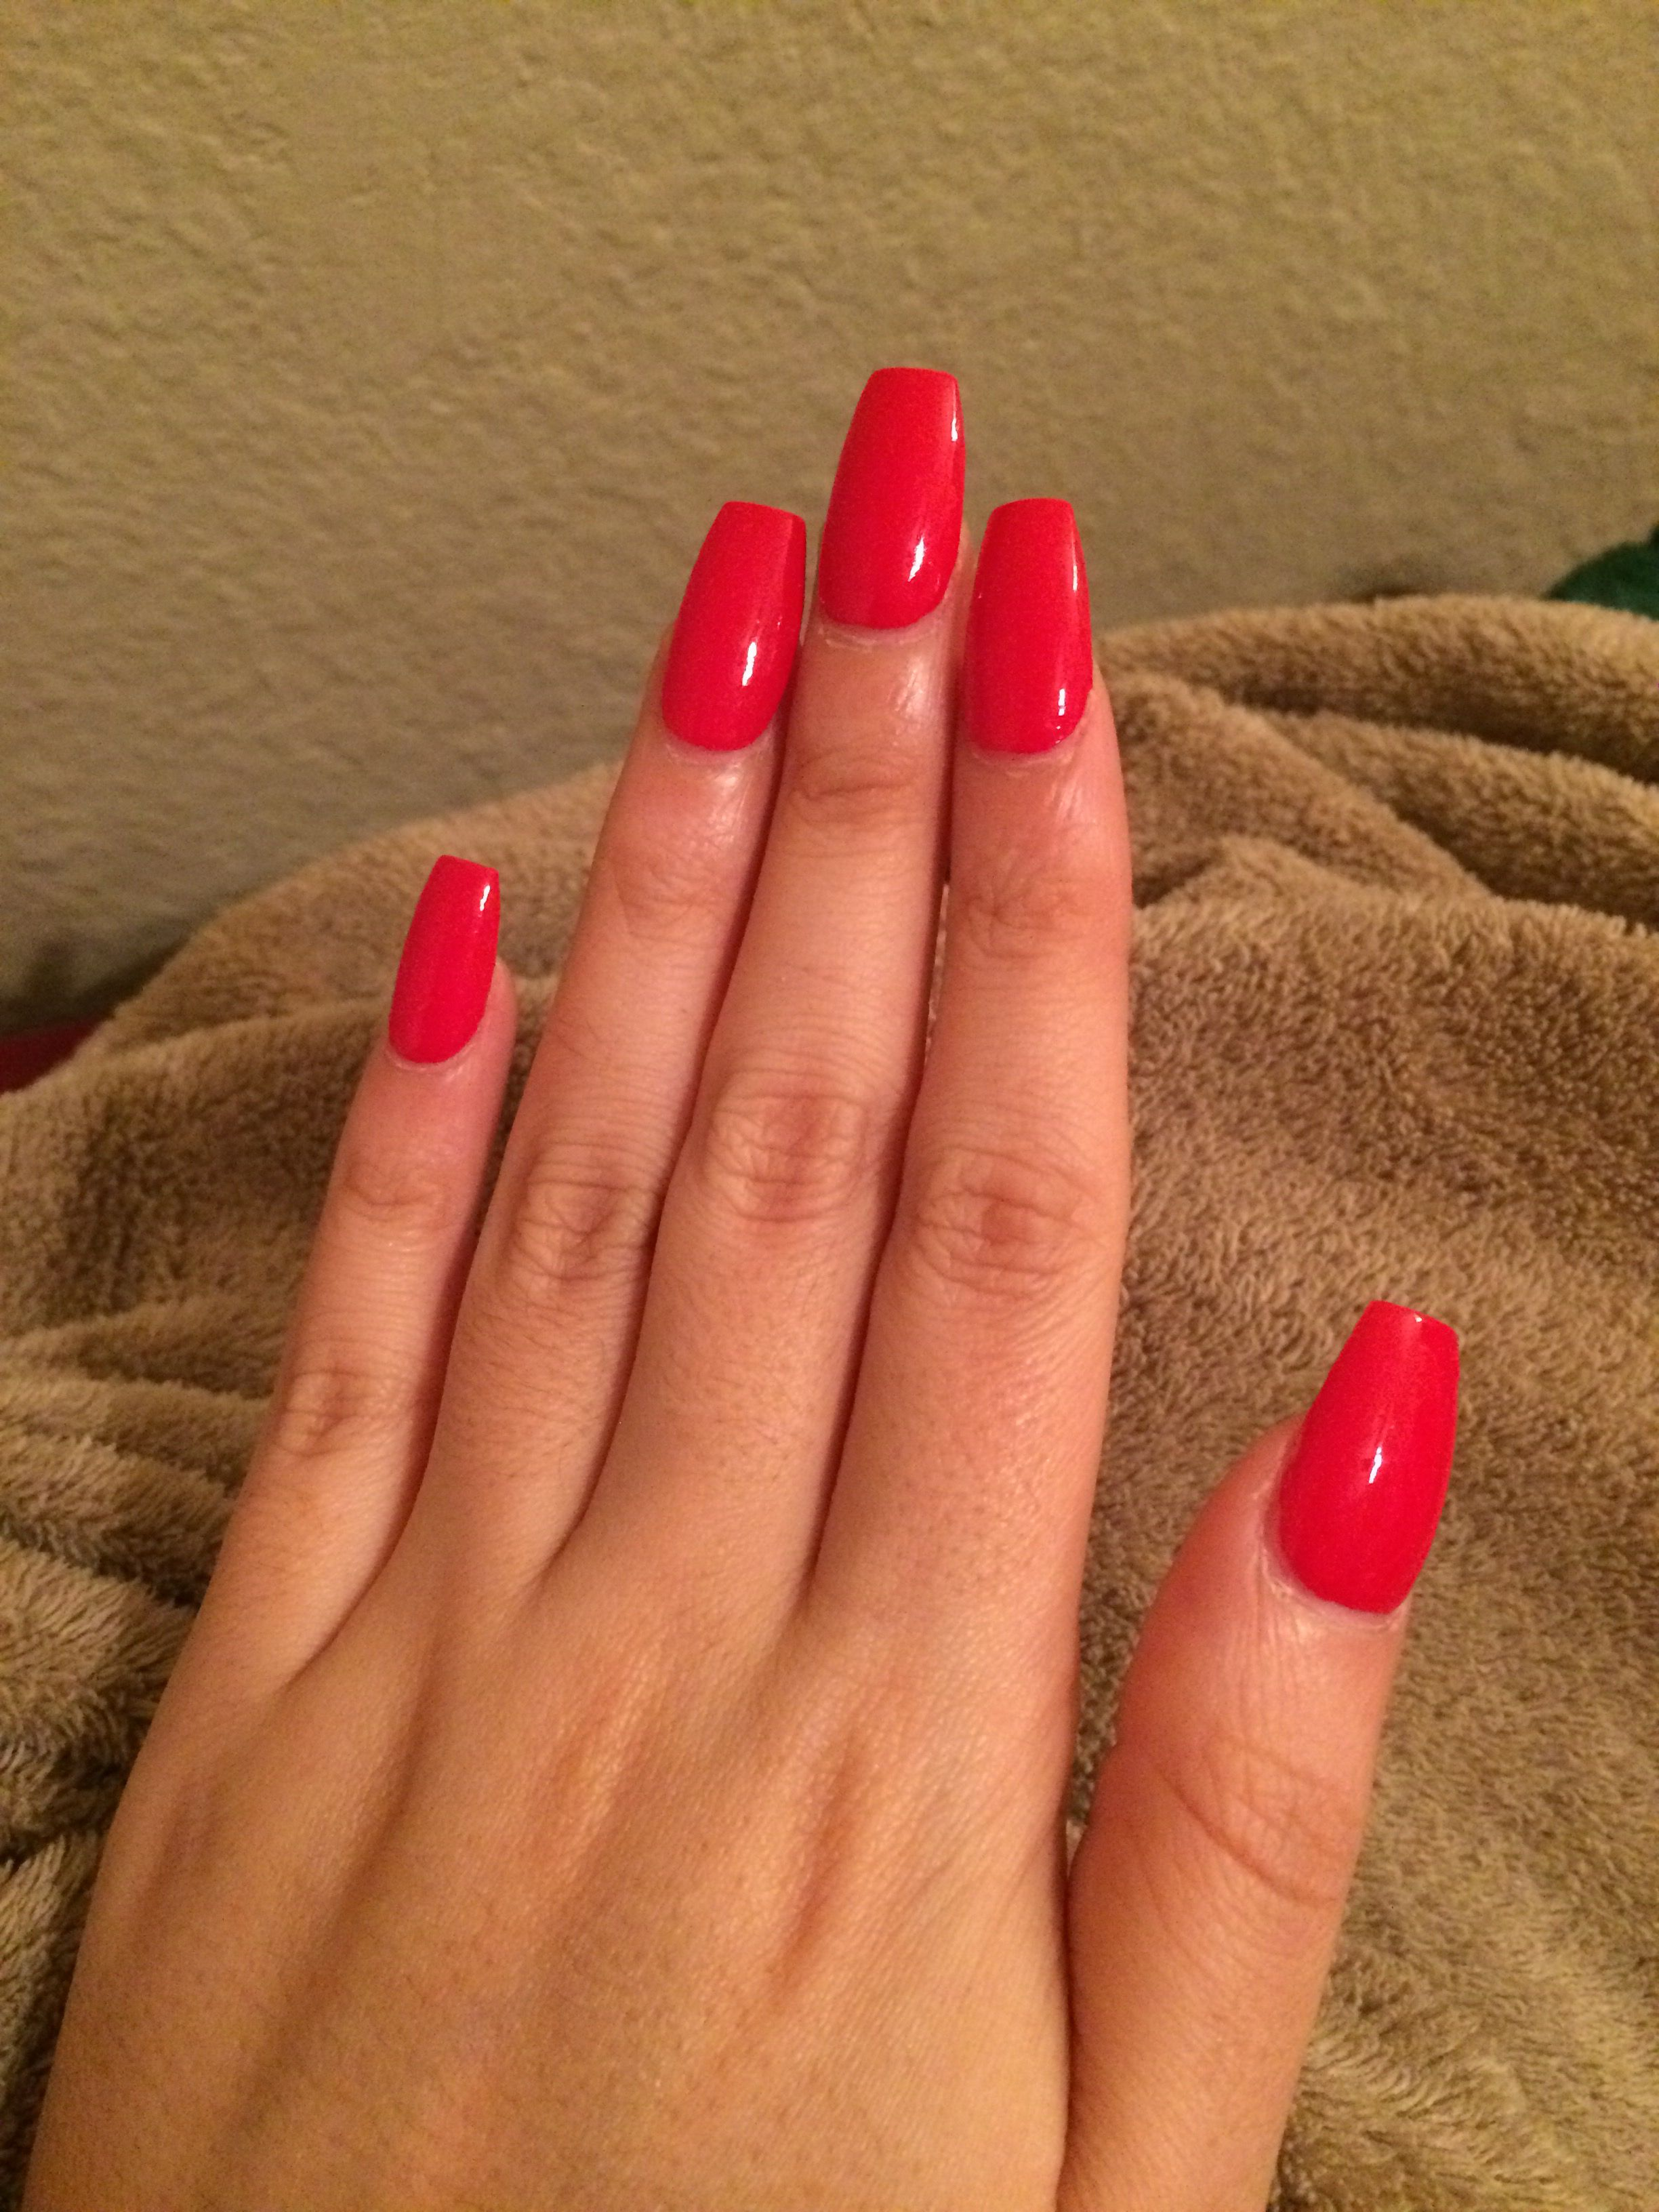 Red coffin acrylic nails - New Expression Nails